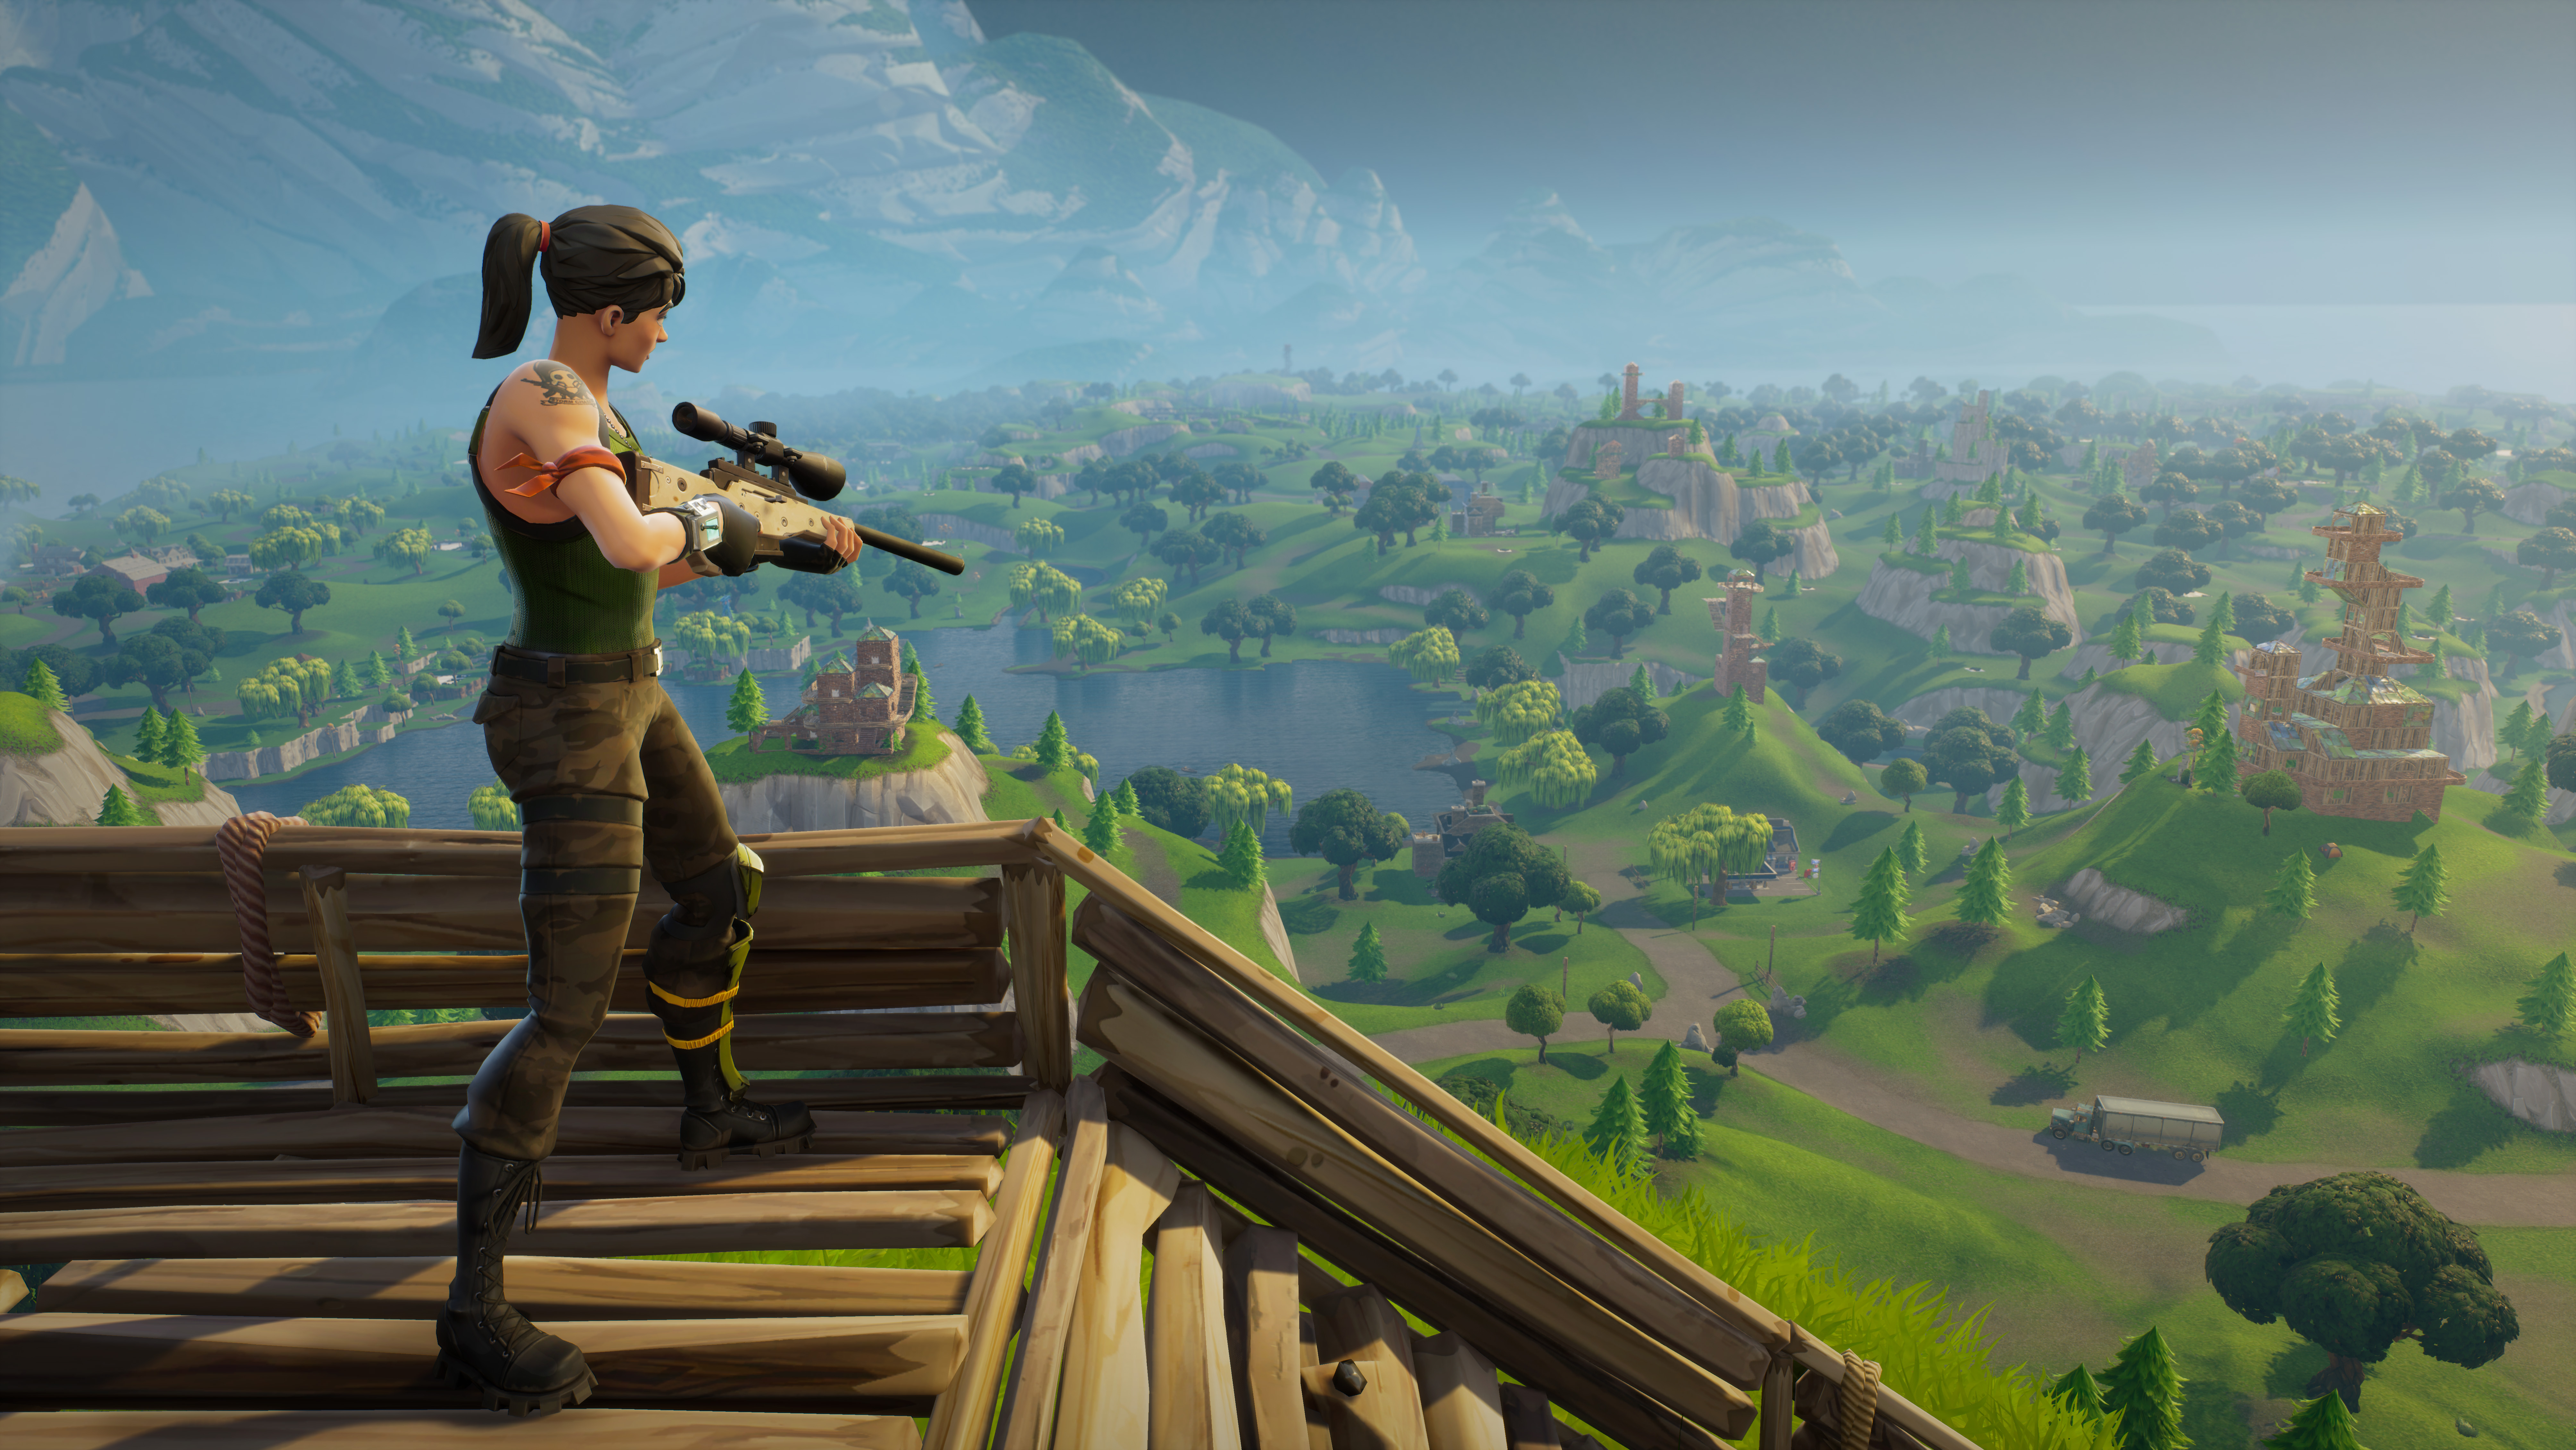 Fortnite's E3 Celebrity Pro-Am Tournament is over, and the grand prize winner is Ninja